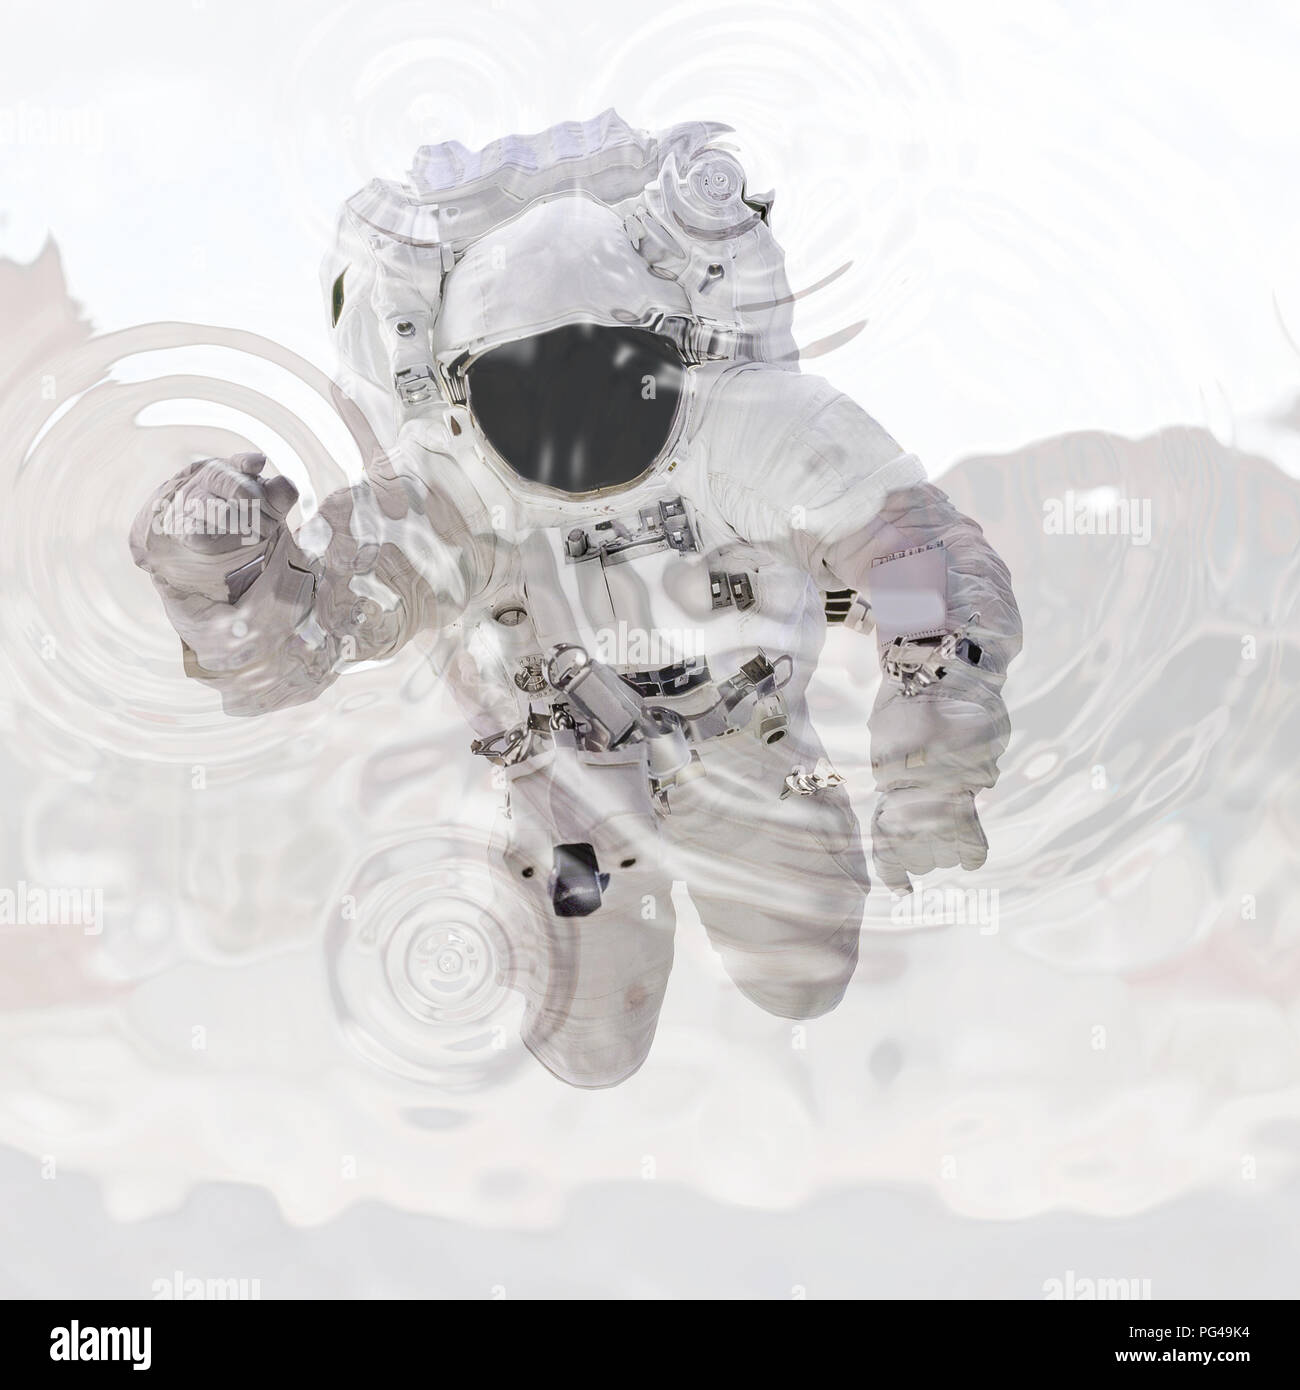 Astronaut in spacesuit close up. Spaceman in outer space. Virtual reality. 3d illustration. Mixed media - Stock Image